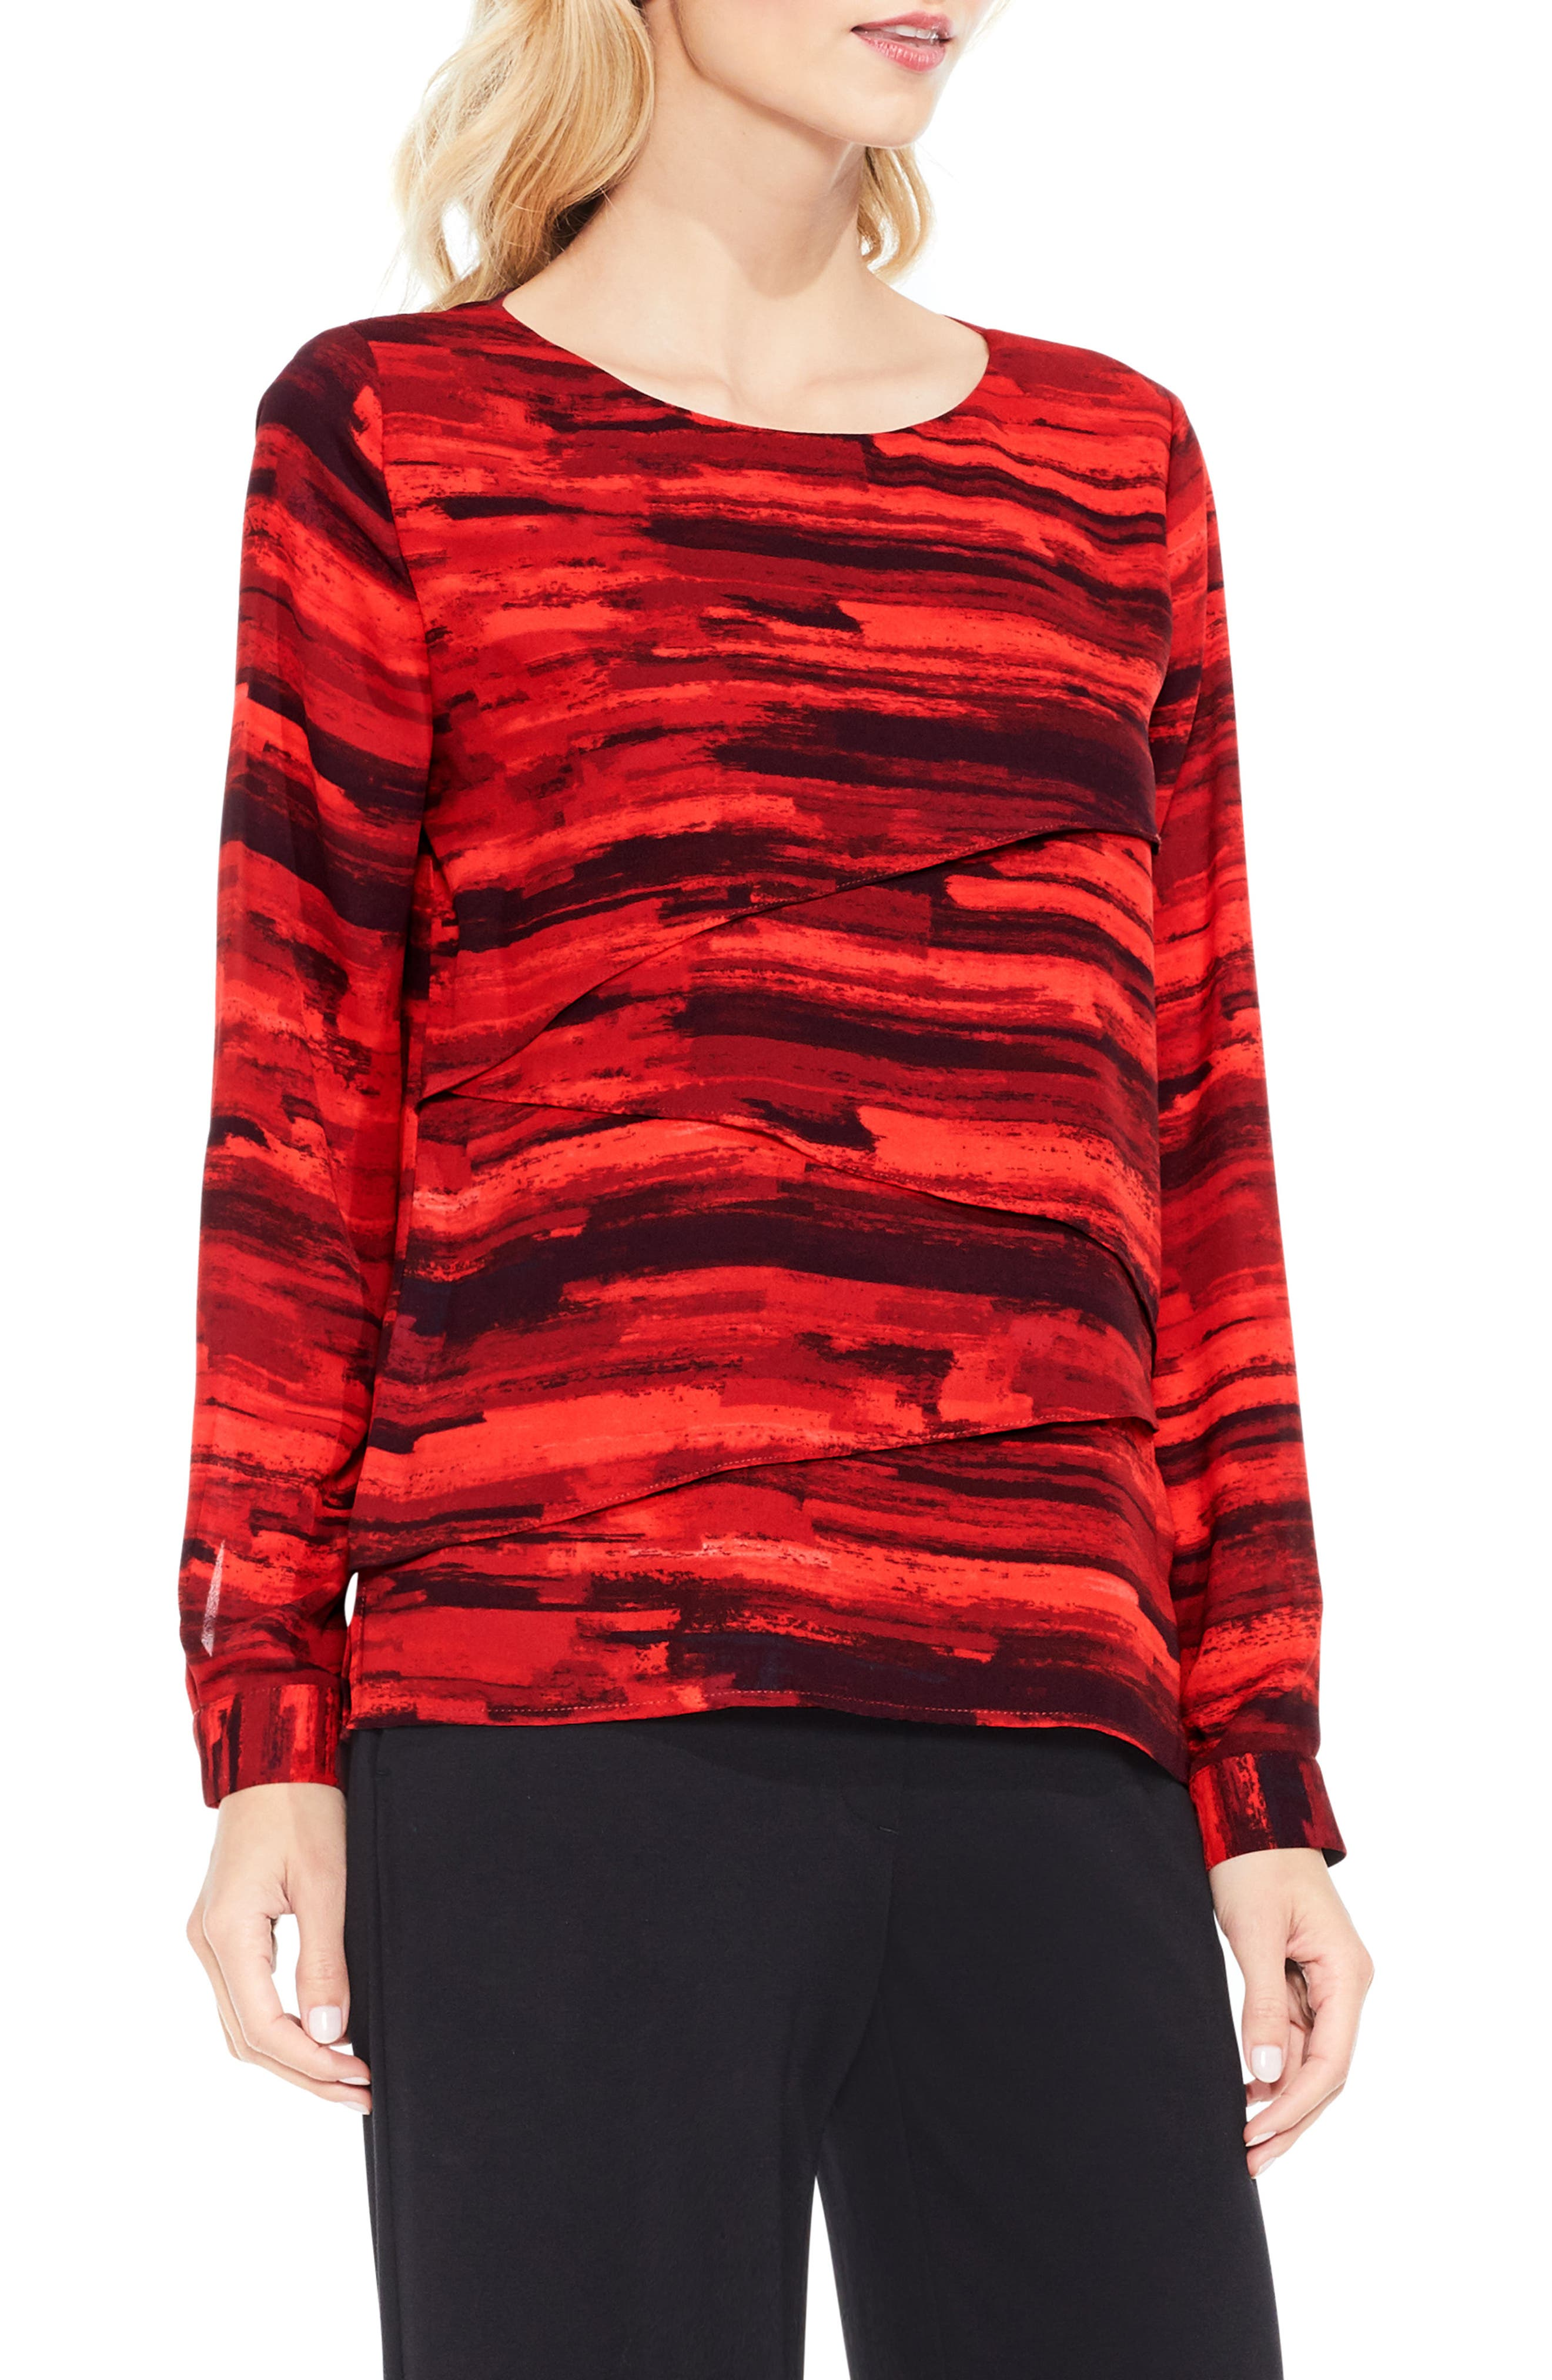 Main Image - Vince Camuto Muses Print Tiered Blouse